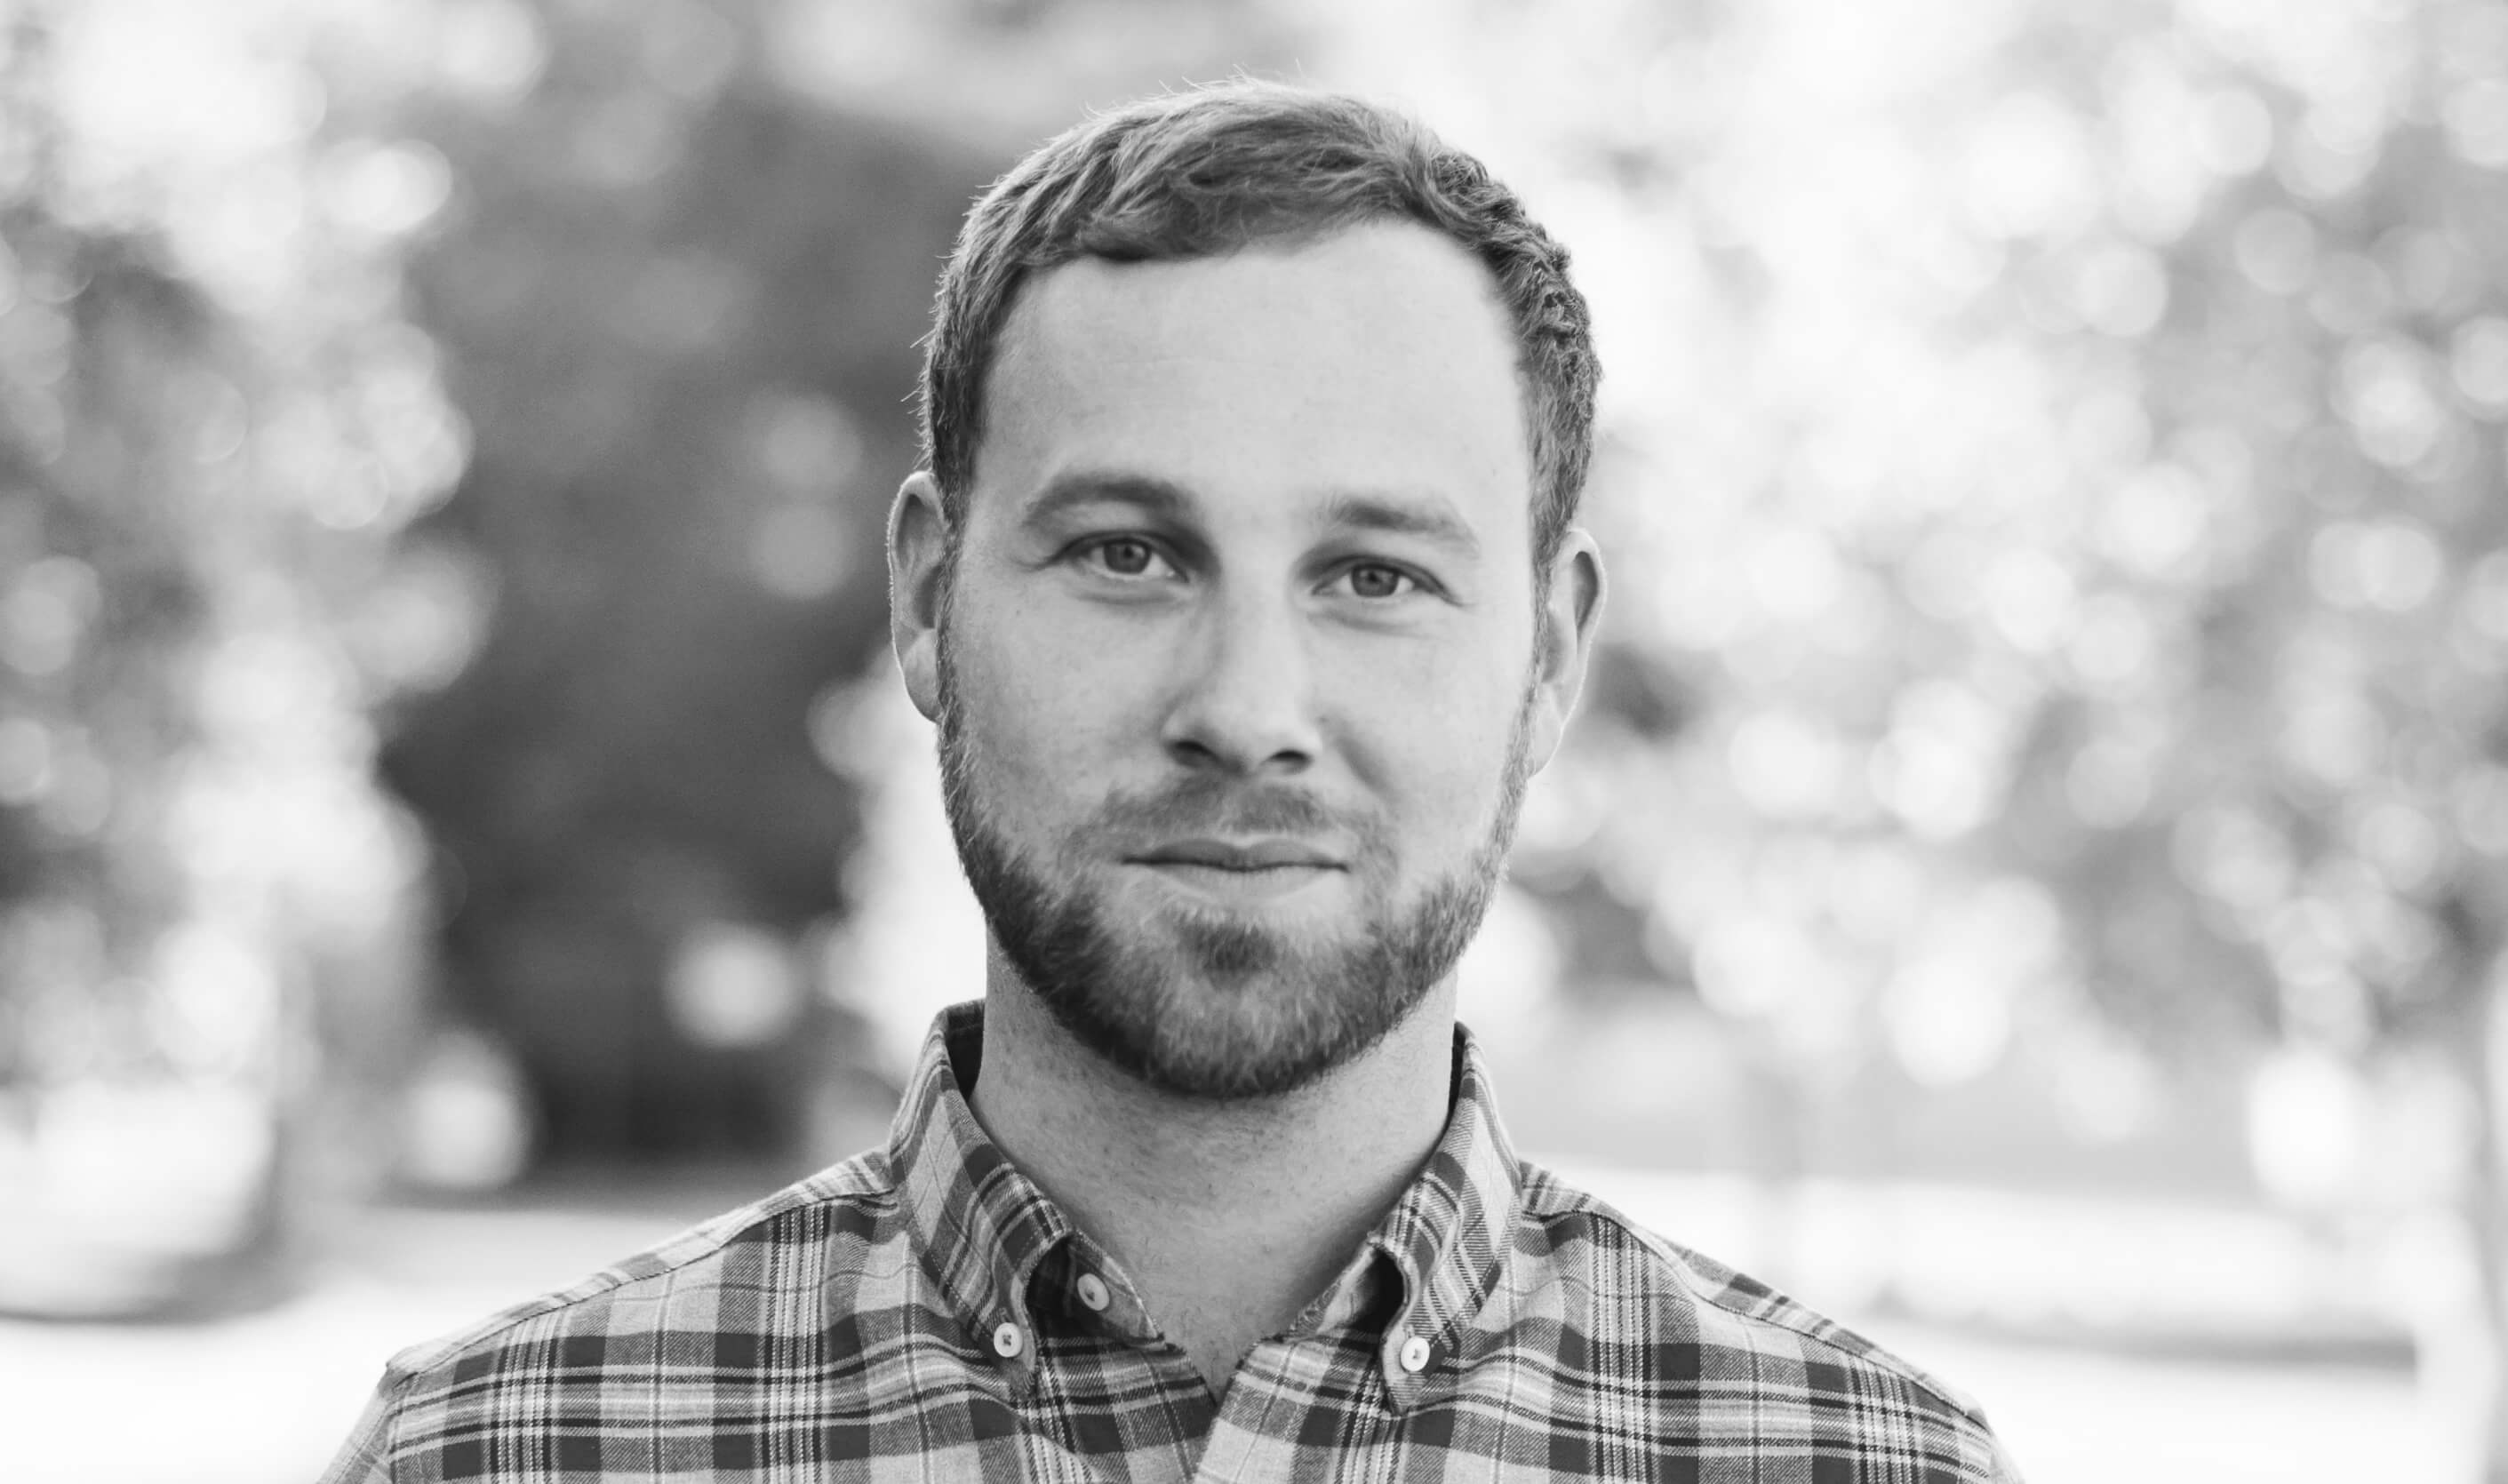 'Why Qualtrics' — Charlie B., Head of Global Enablement